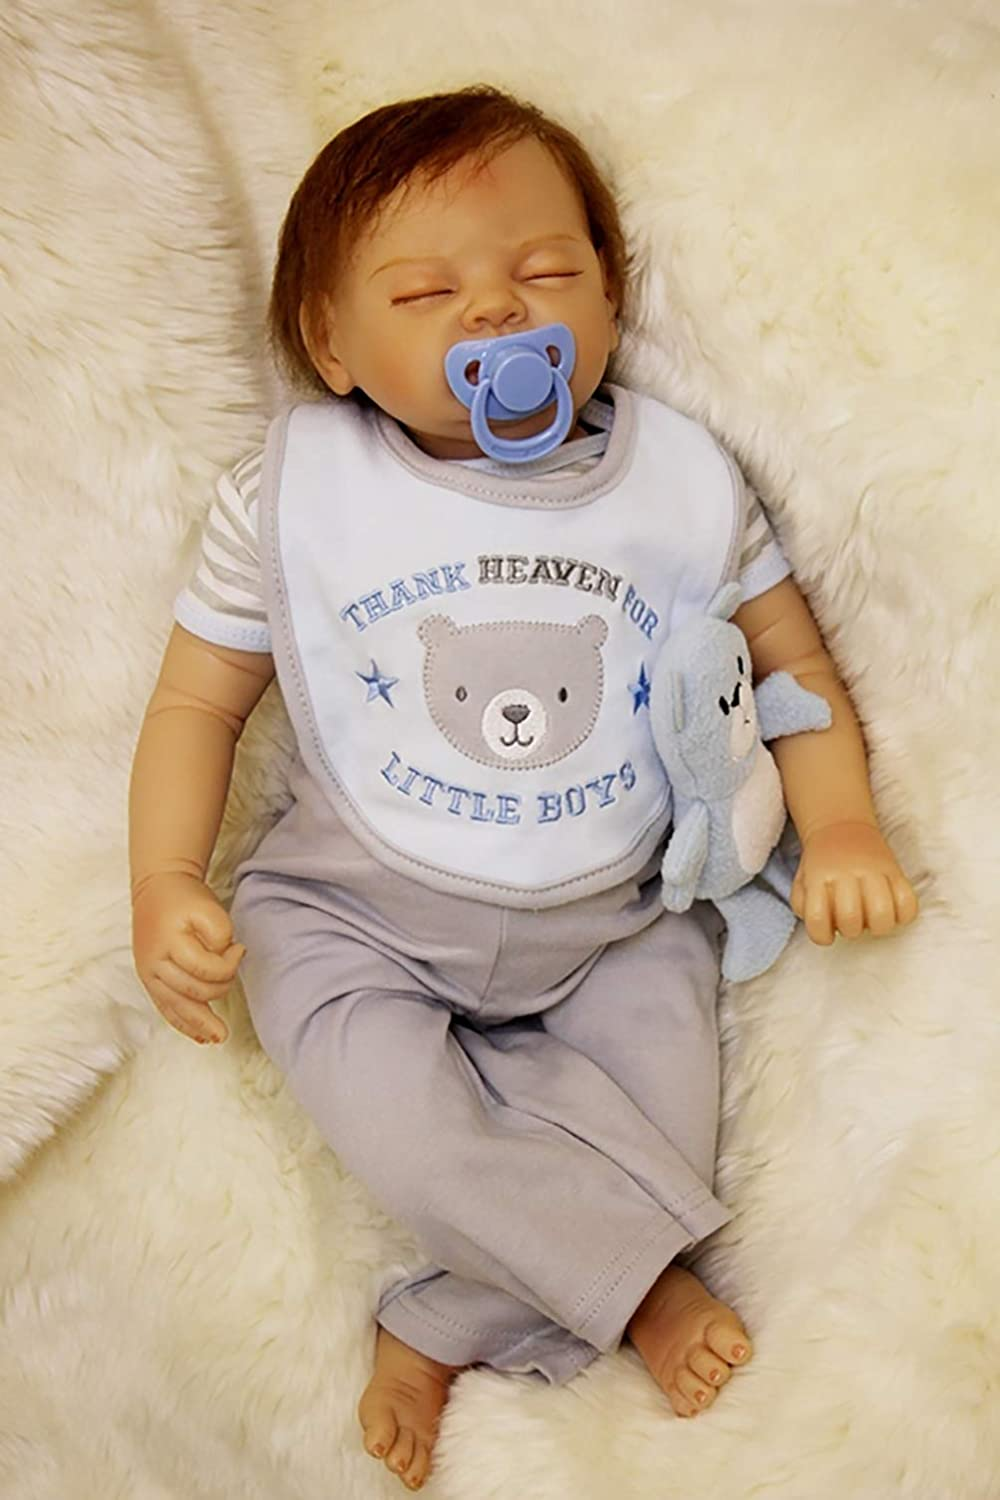 antboat Reborn Baby Dolls Boys 22 inch 55cm Soft Silicone Reborn Real Life Toddler Baby Dolls Newborn Baby Sleeping Boys Magnetic Mouth Xmas Gifts Reborn Babies